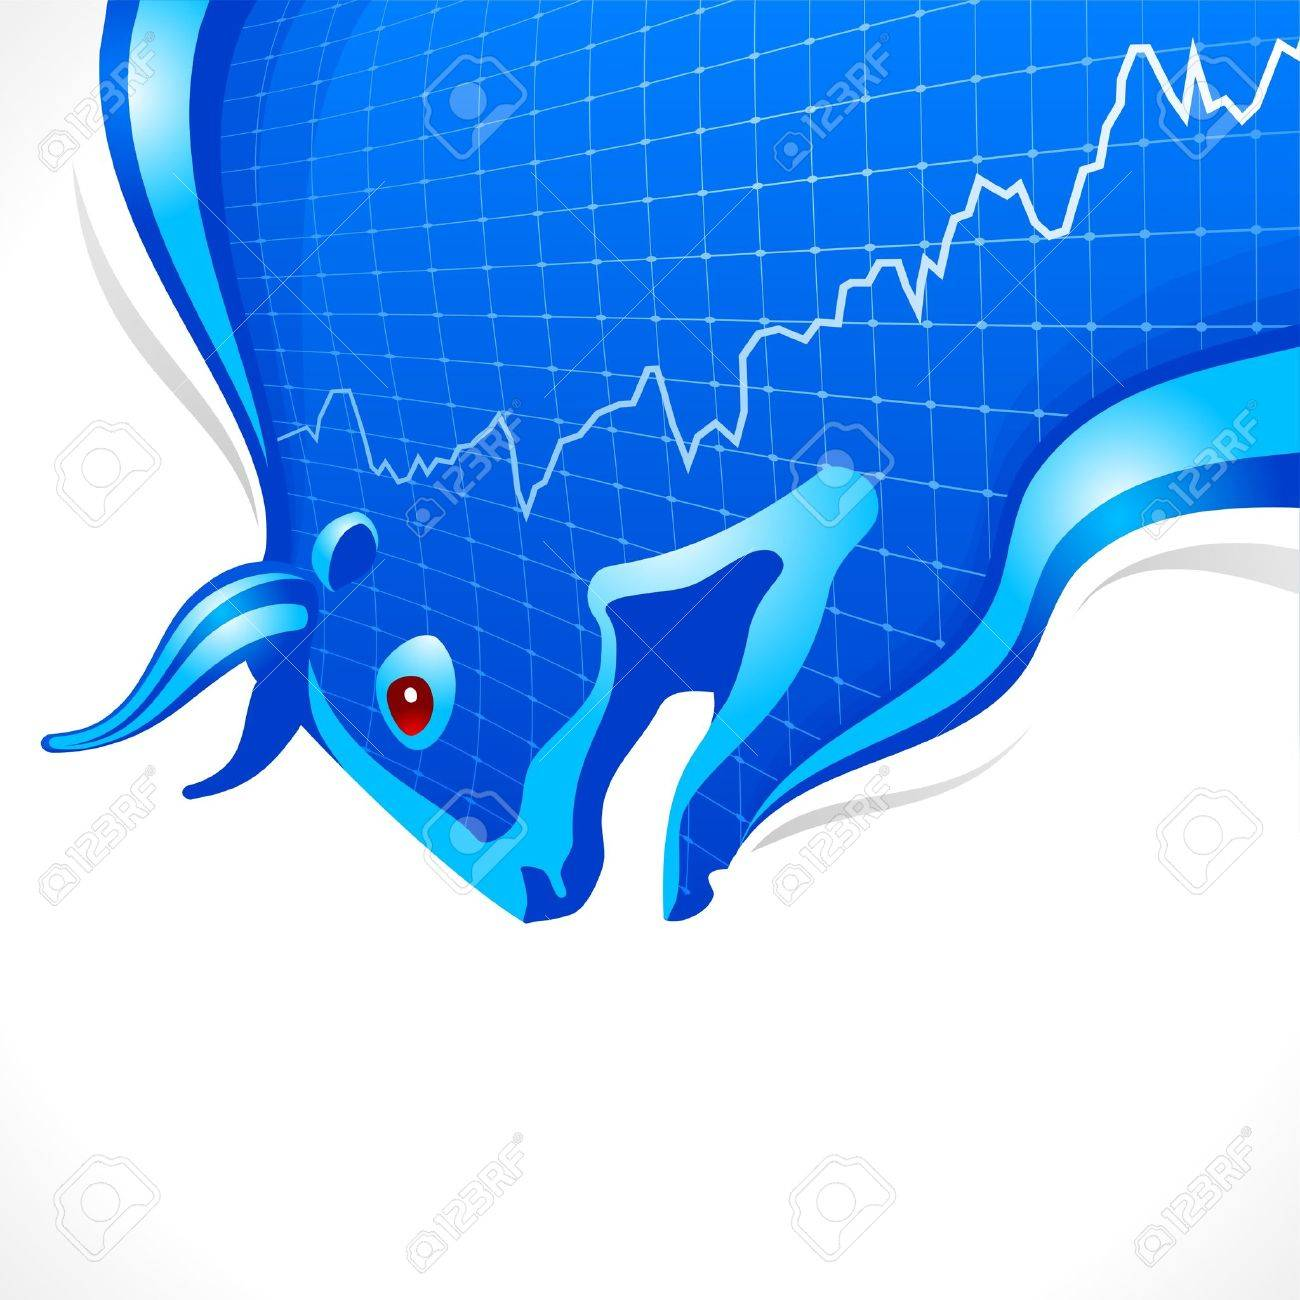 Coriel Electronics Stock Market Bull Symbol All Trusted Brokers In